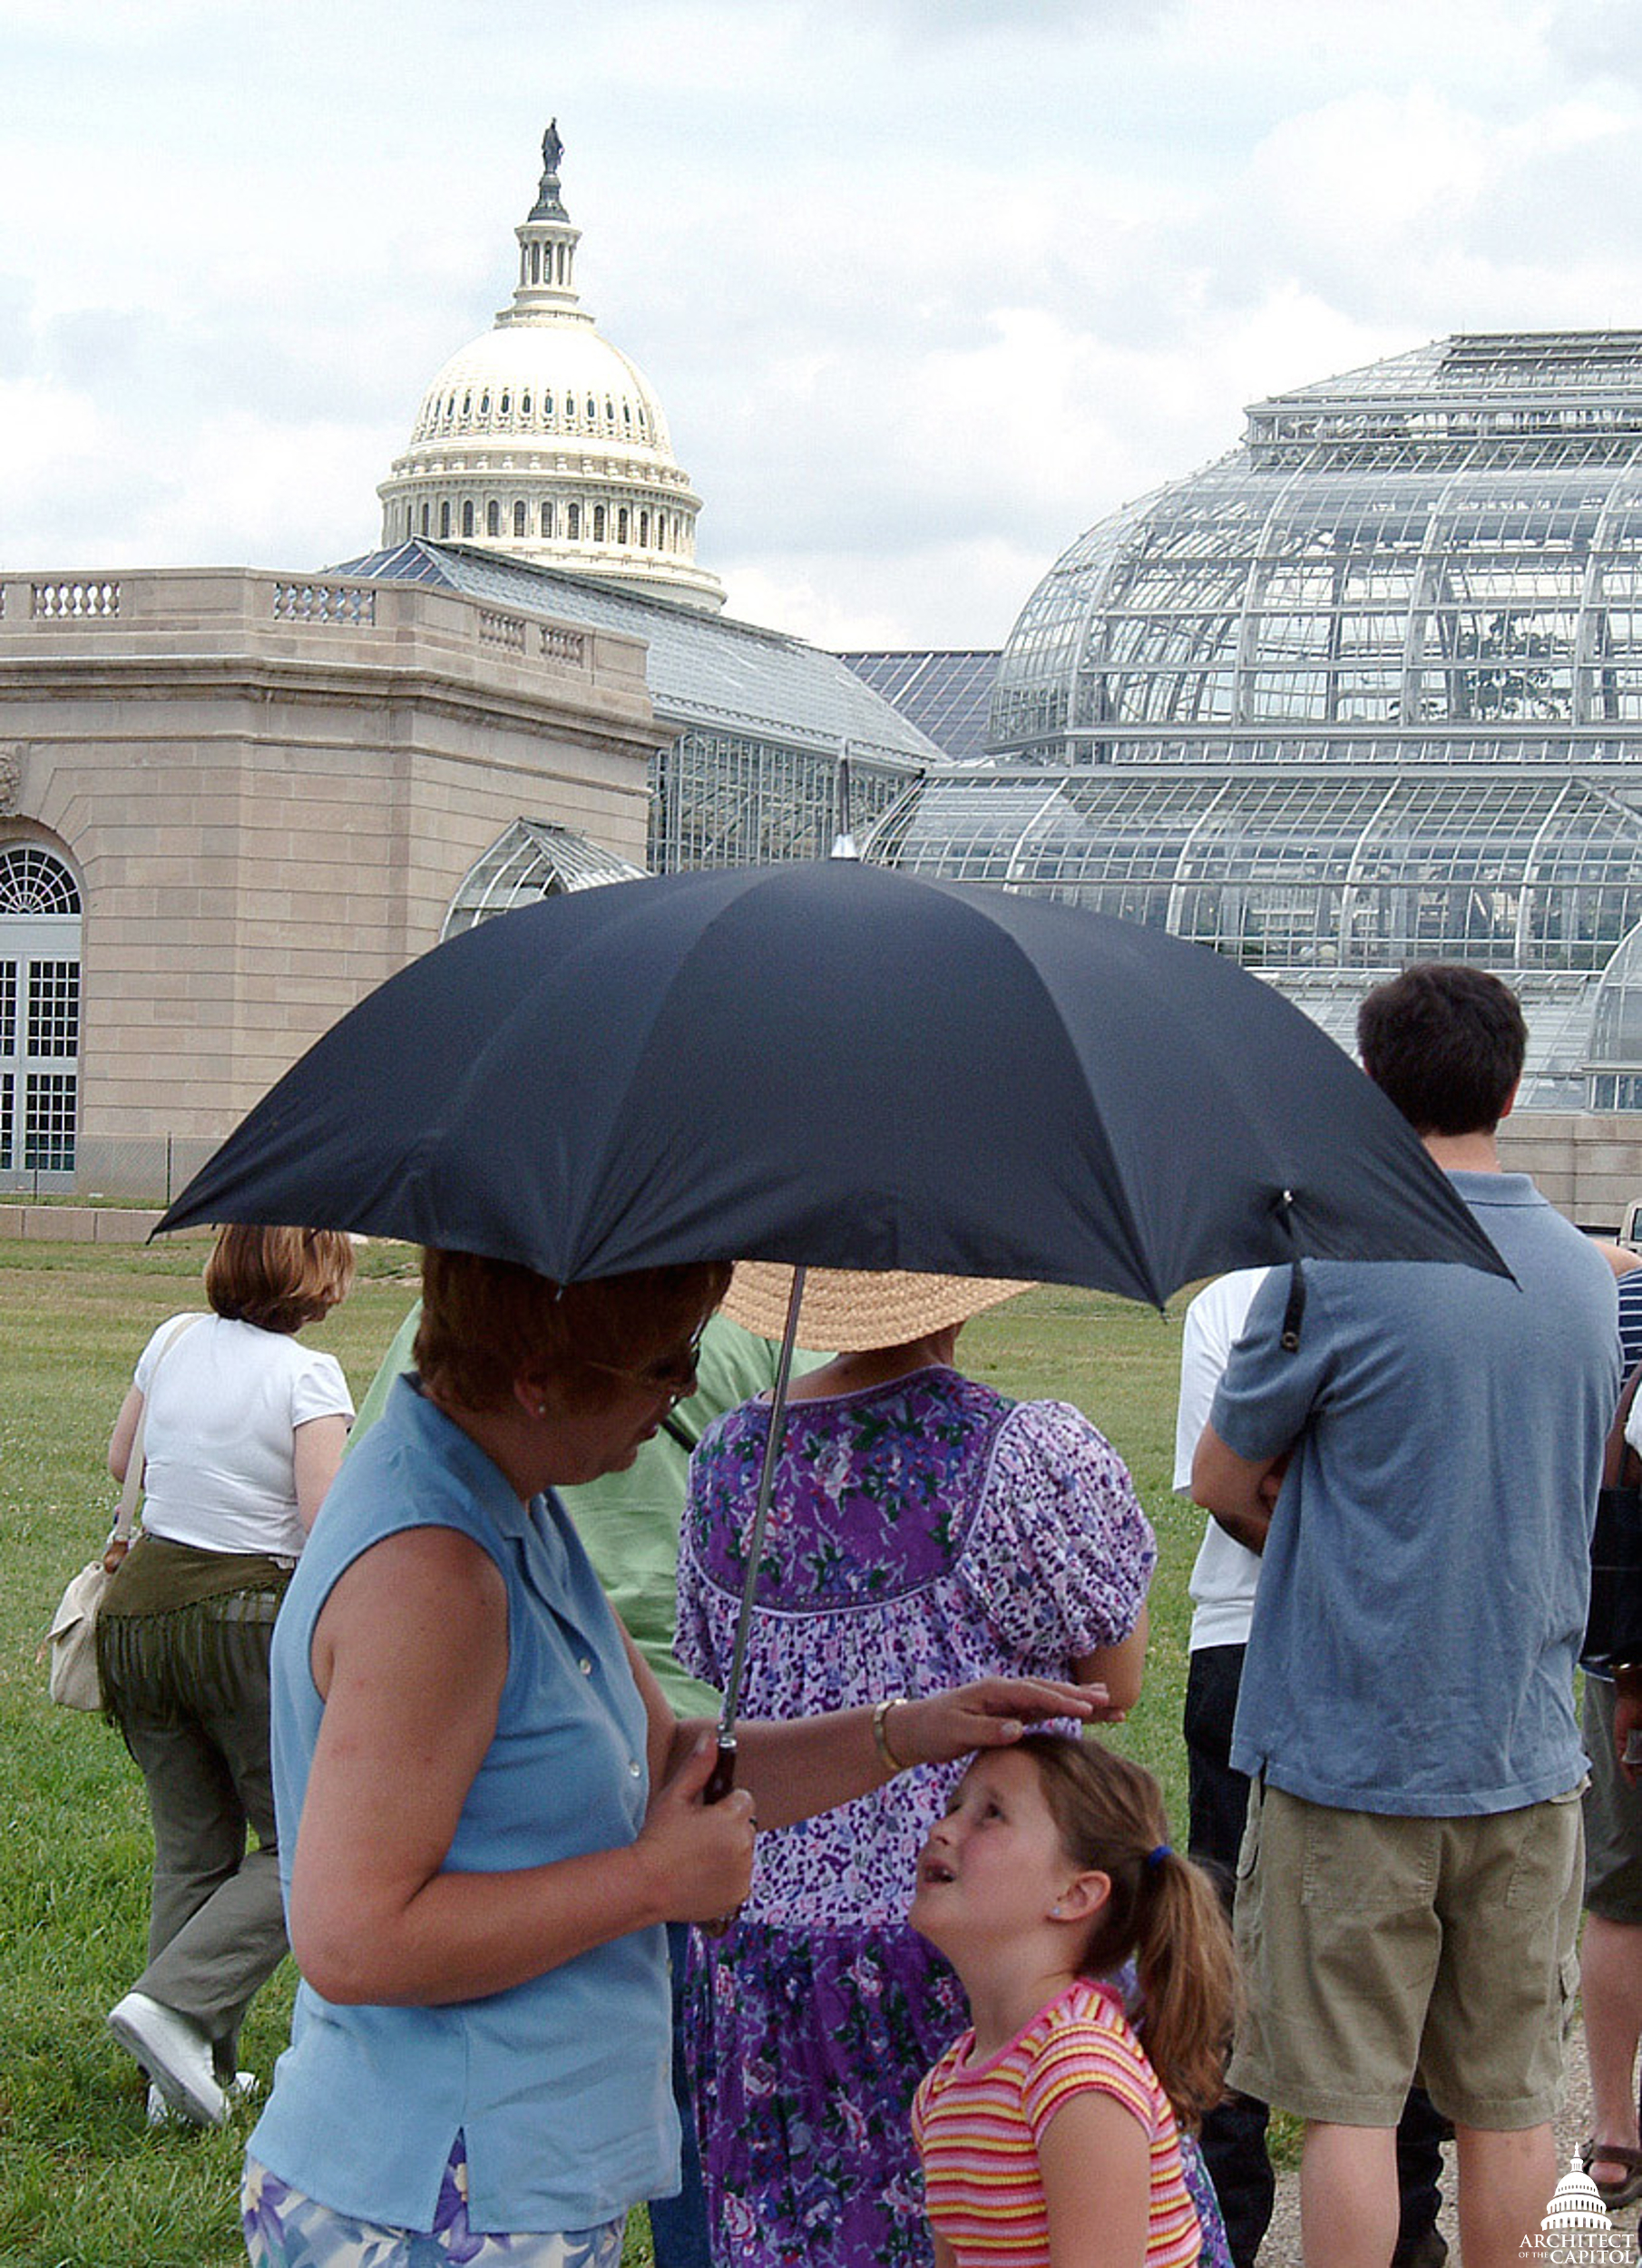 Visitors shade themselves from the summer sun with an umbrella.